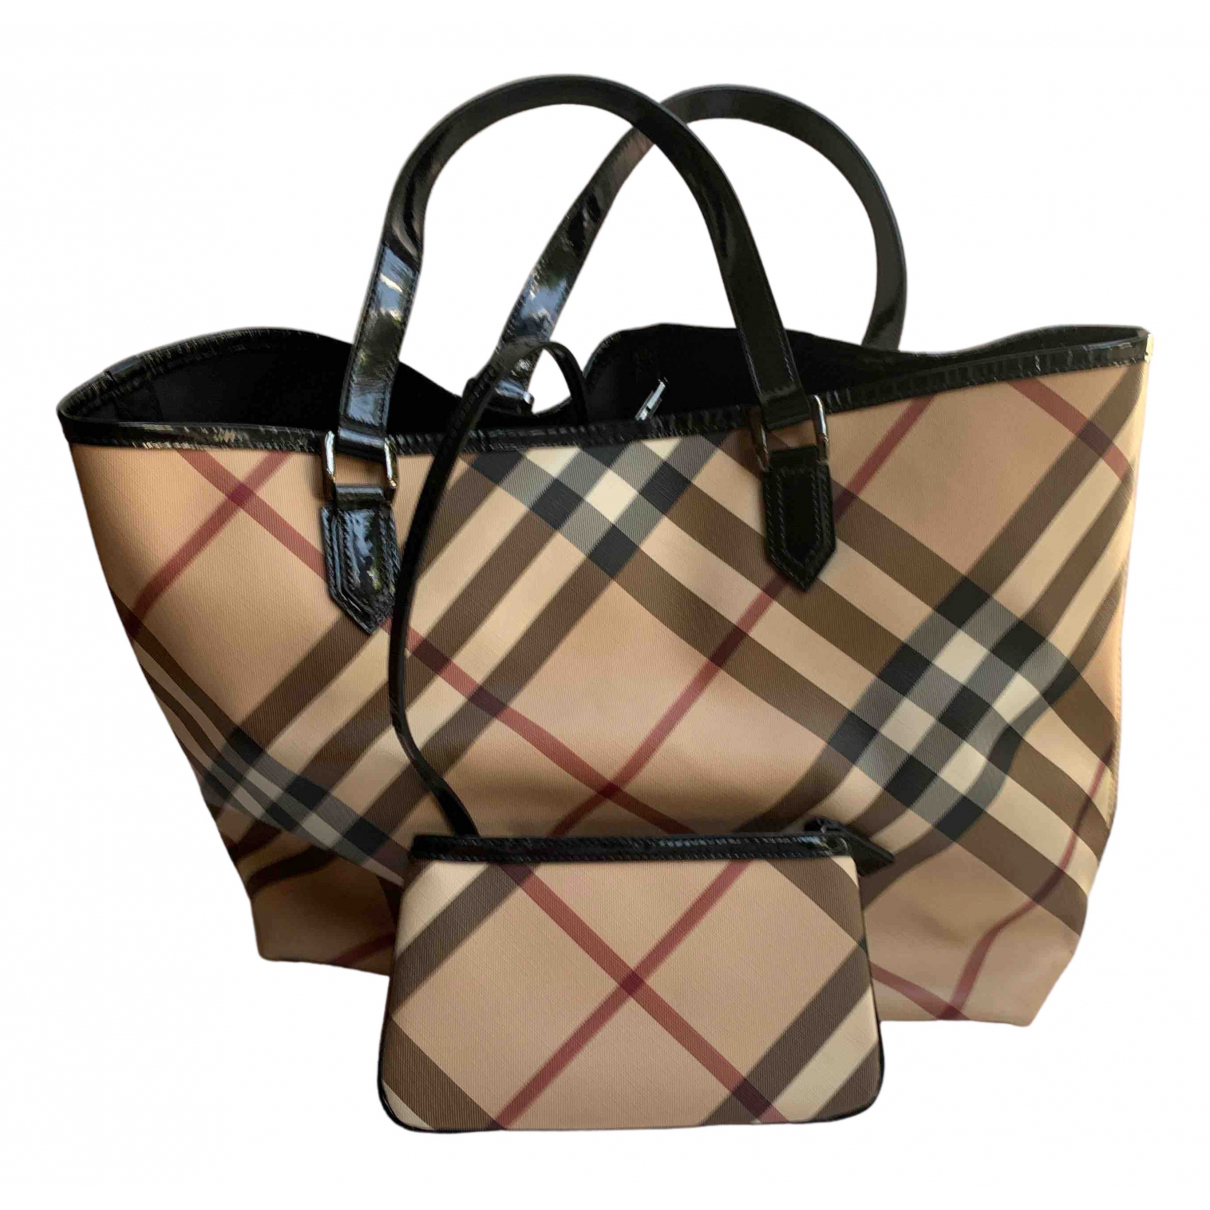 Burberry N Beige Patent leather handbag for Women N